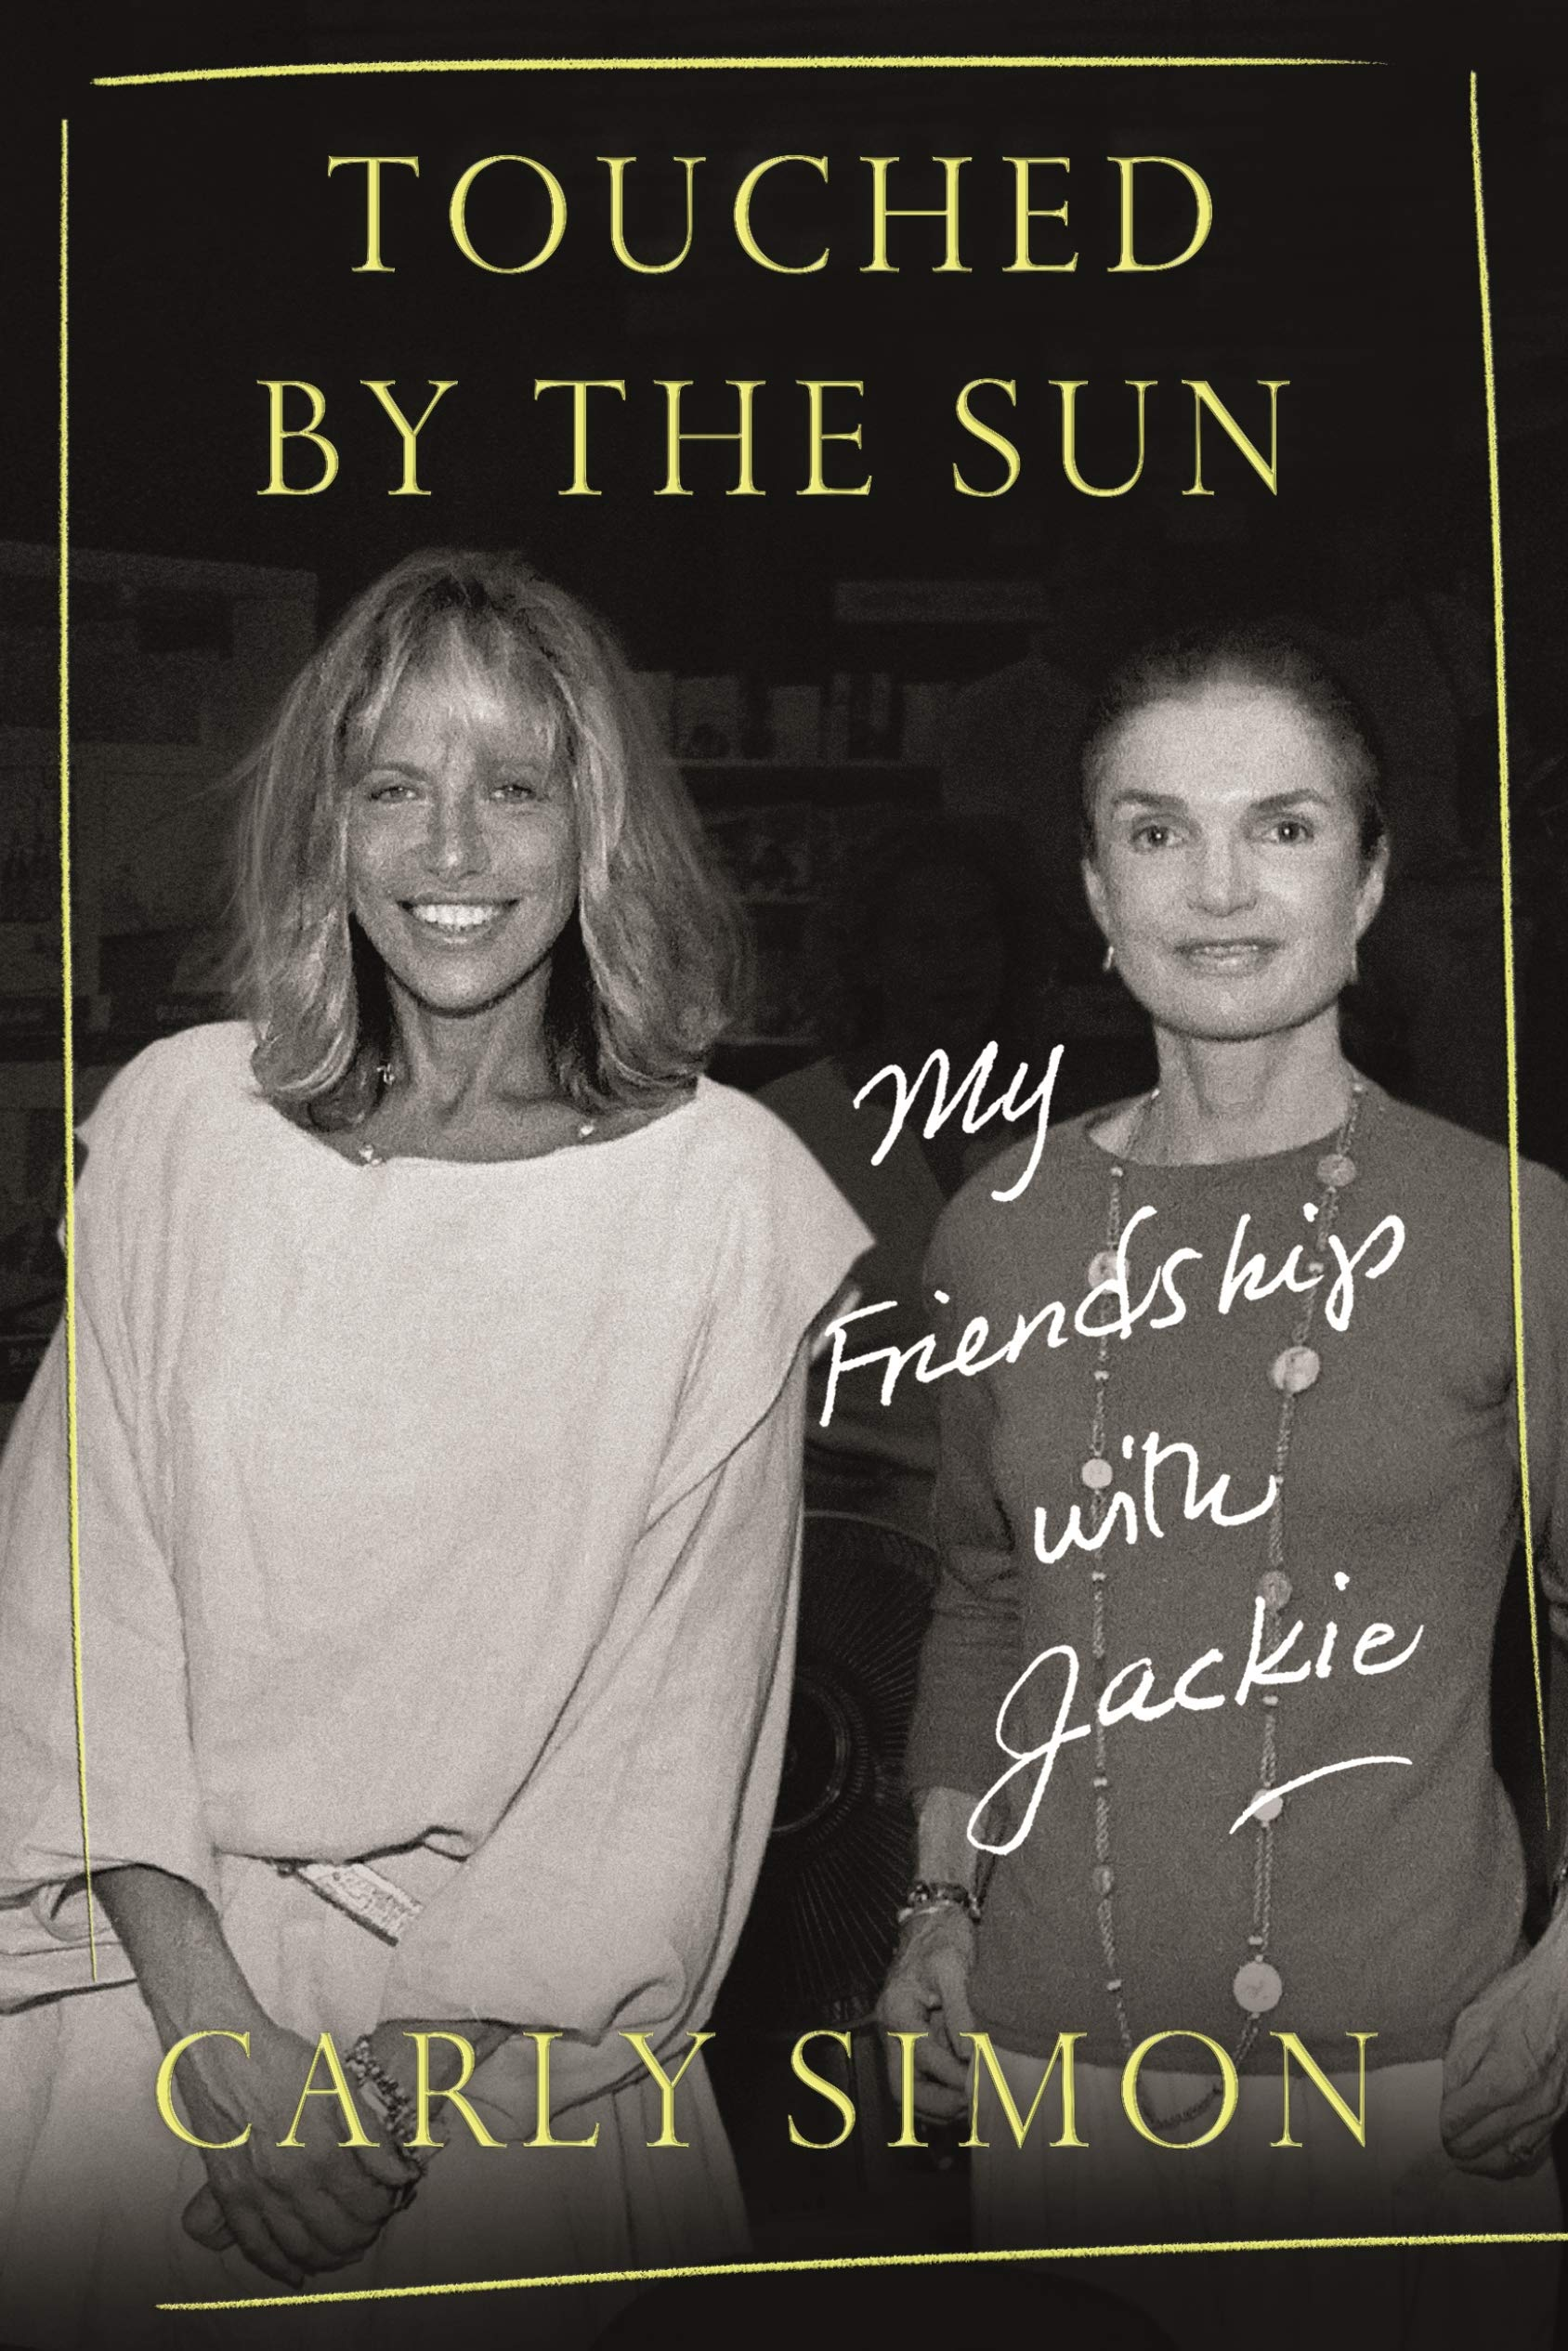 Touched by the Sun: My Friendship with Jackie by Farrar, Straus and Giroux